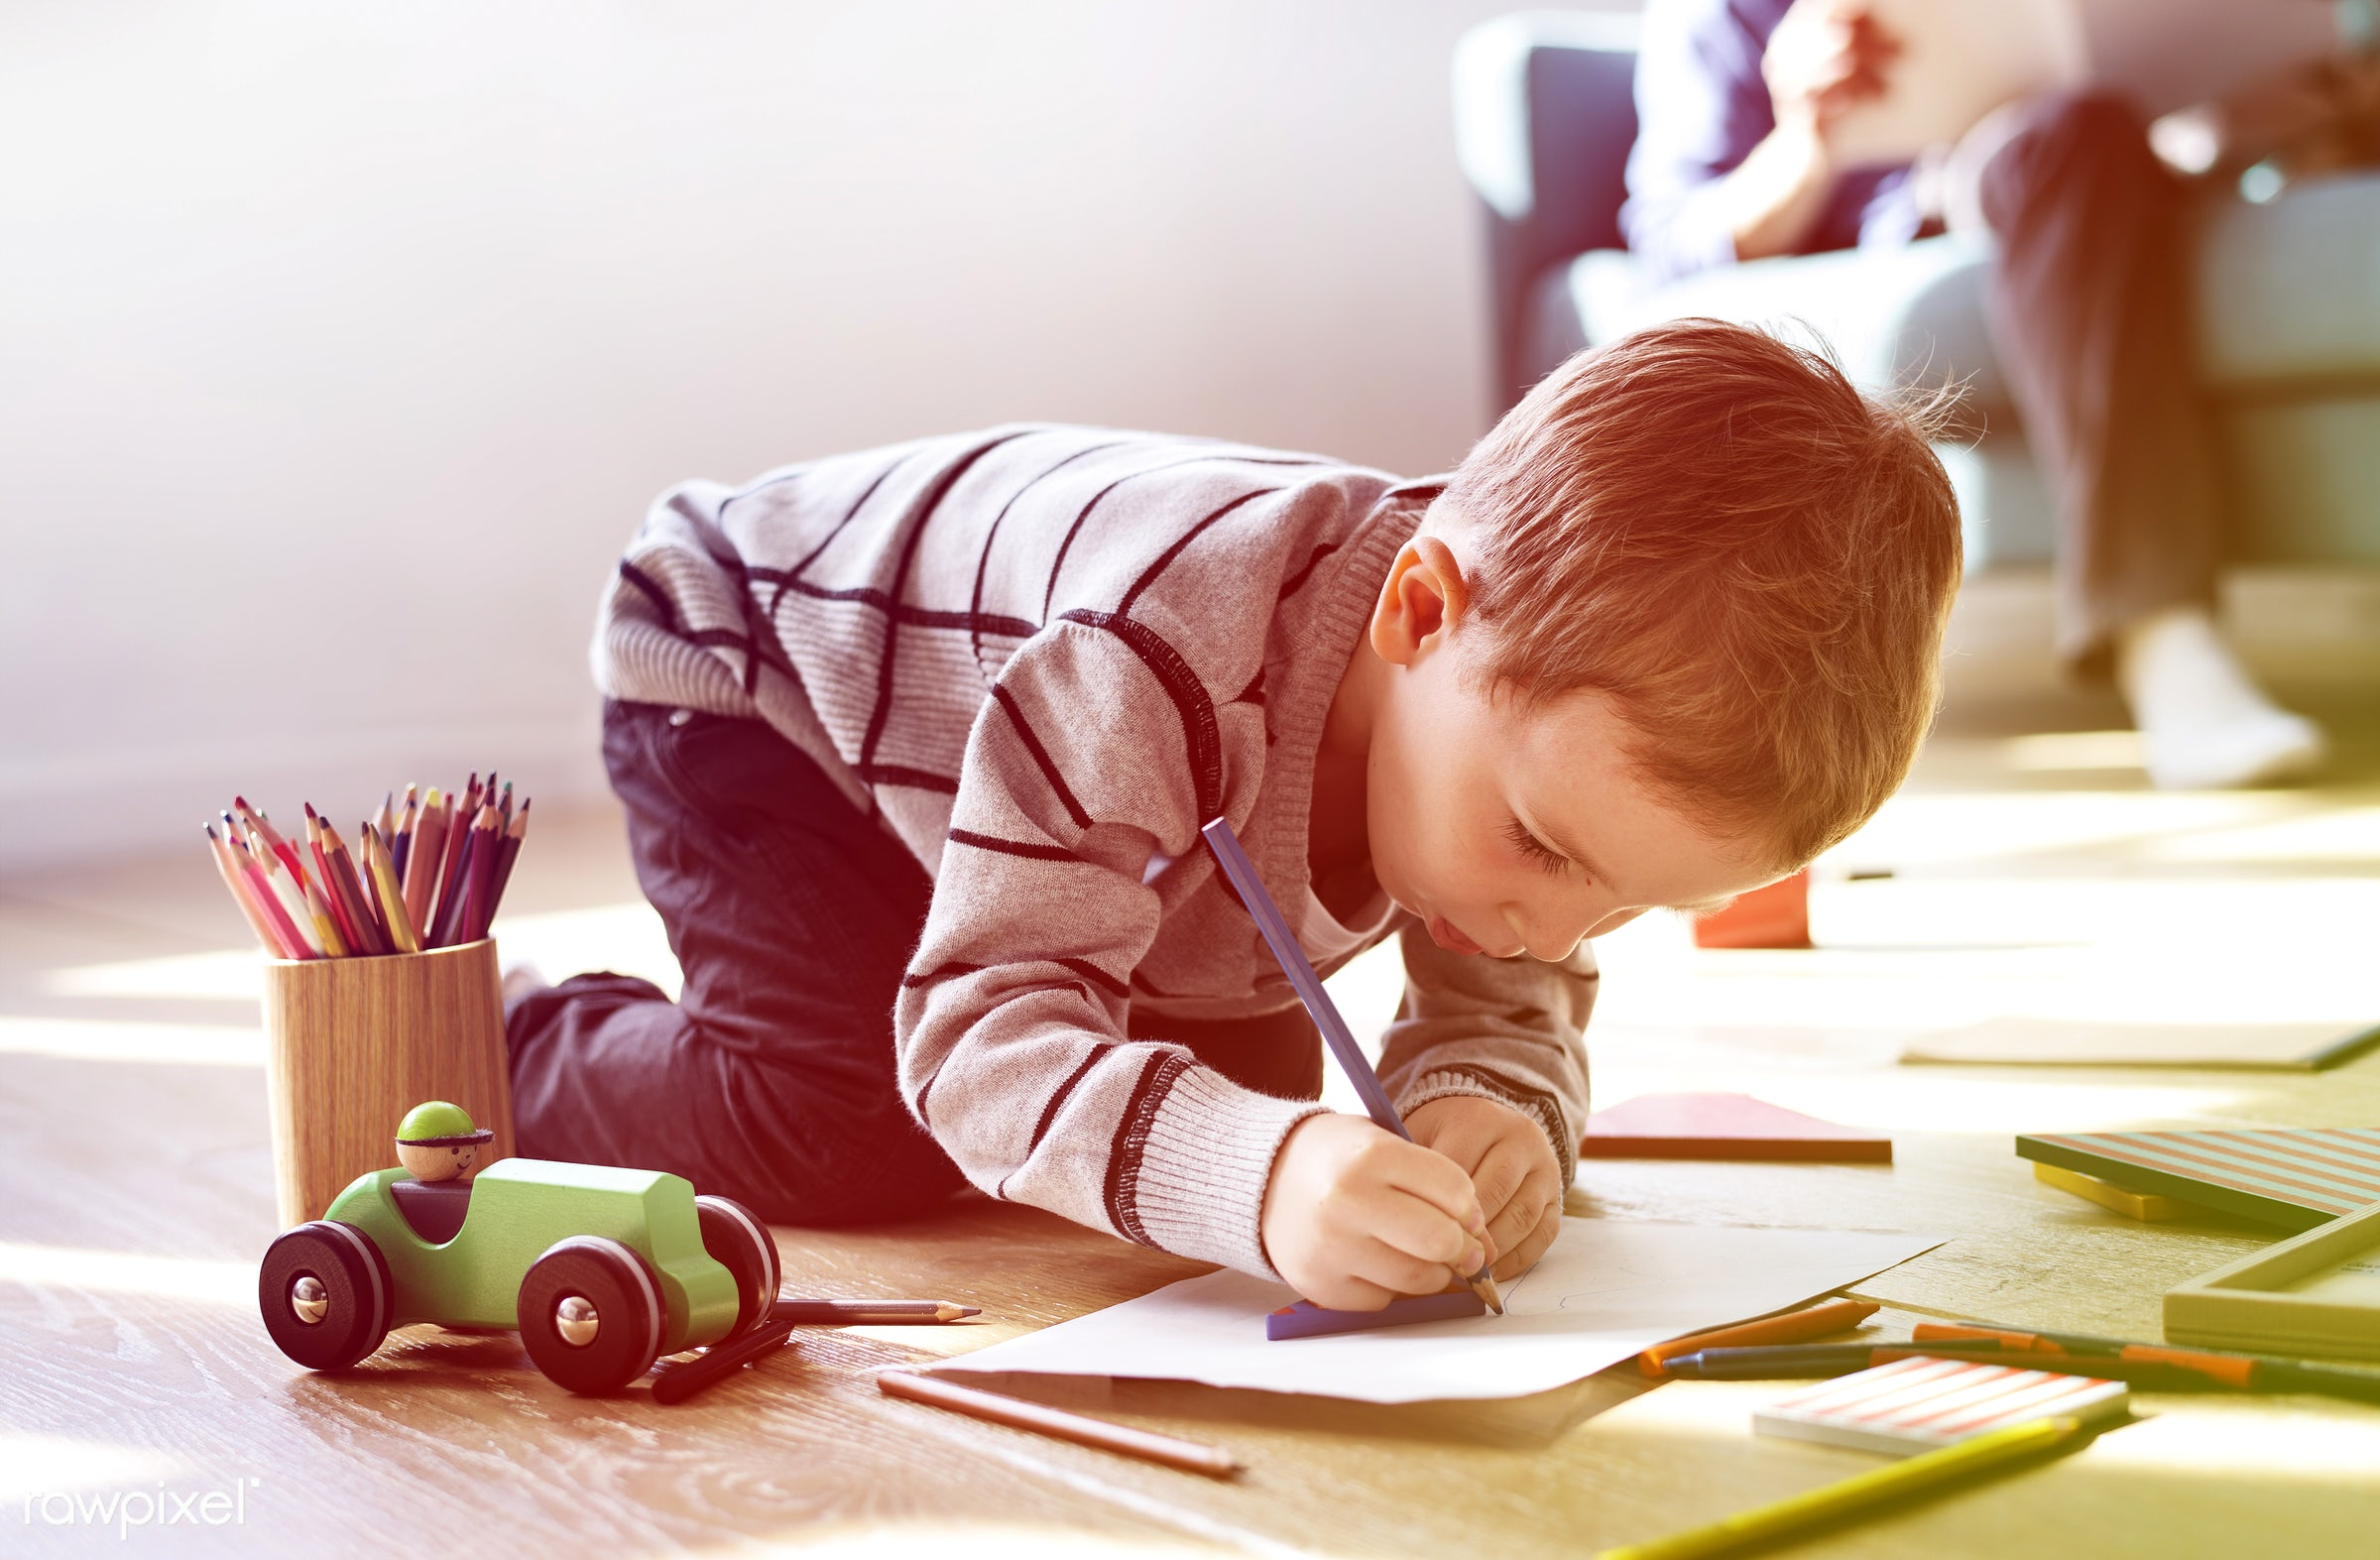 activity, adorable, american, art, blend, bonding, boy, brother, carefree, casual, caucasian, cheerful, child, childhood,...